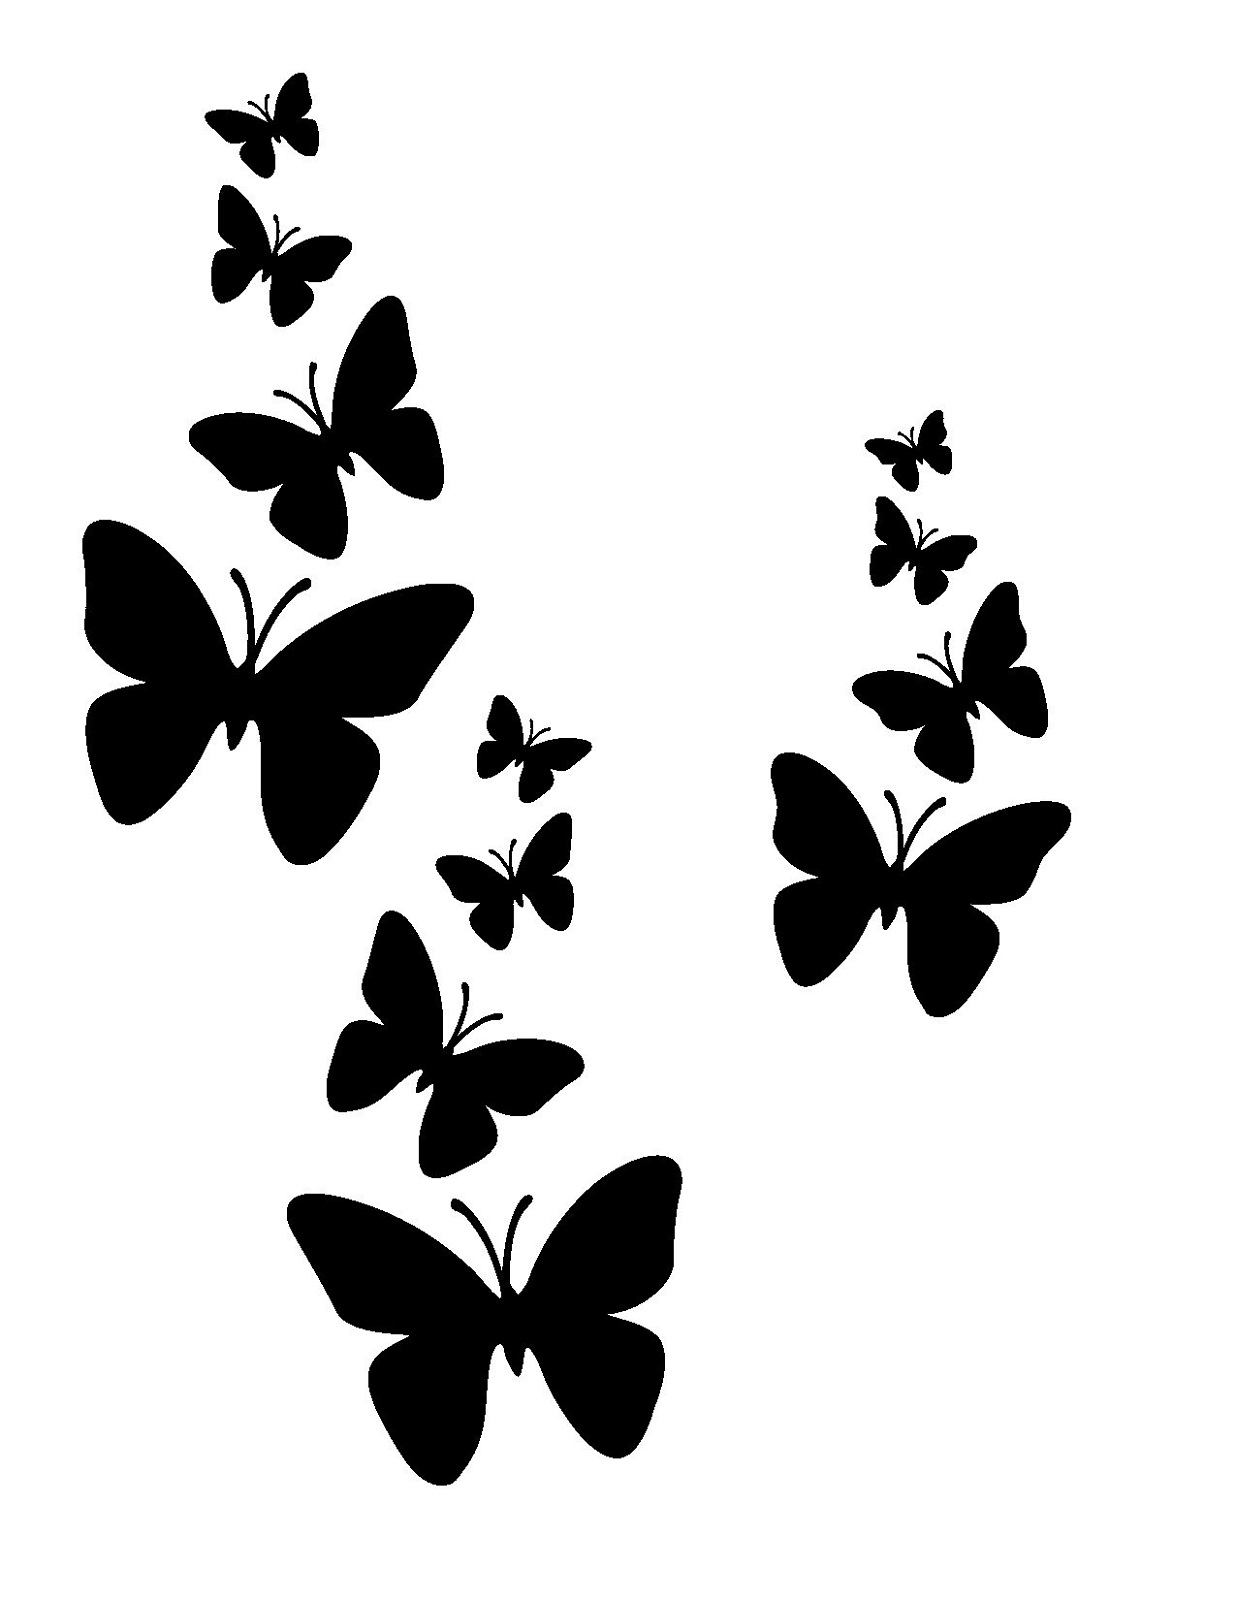 Printable Stencils With Simple Design